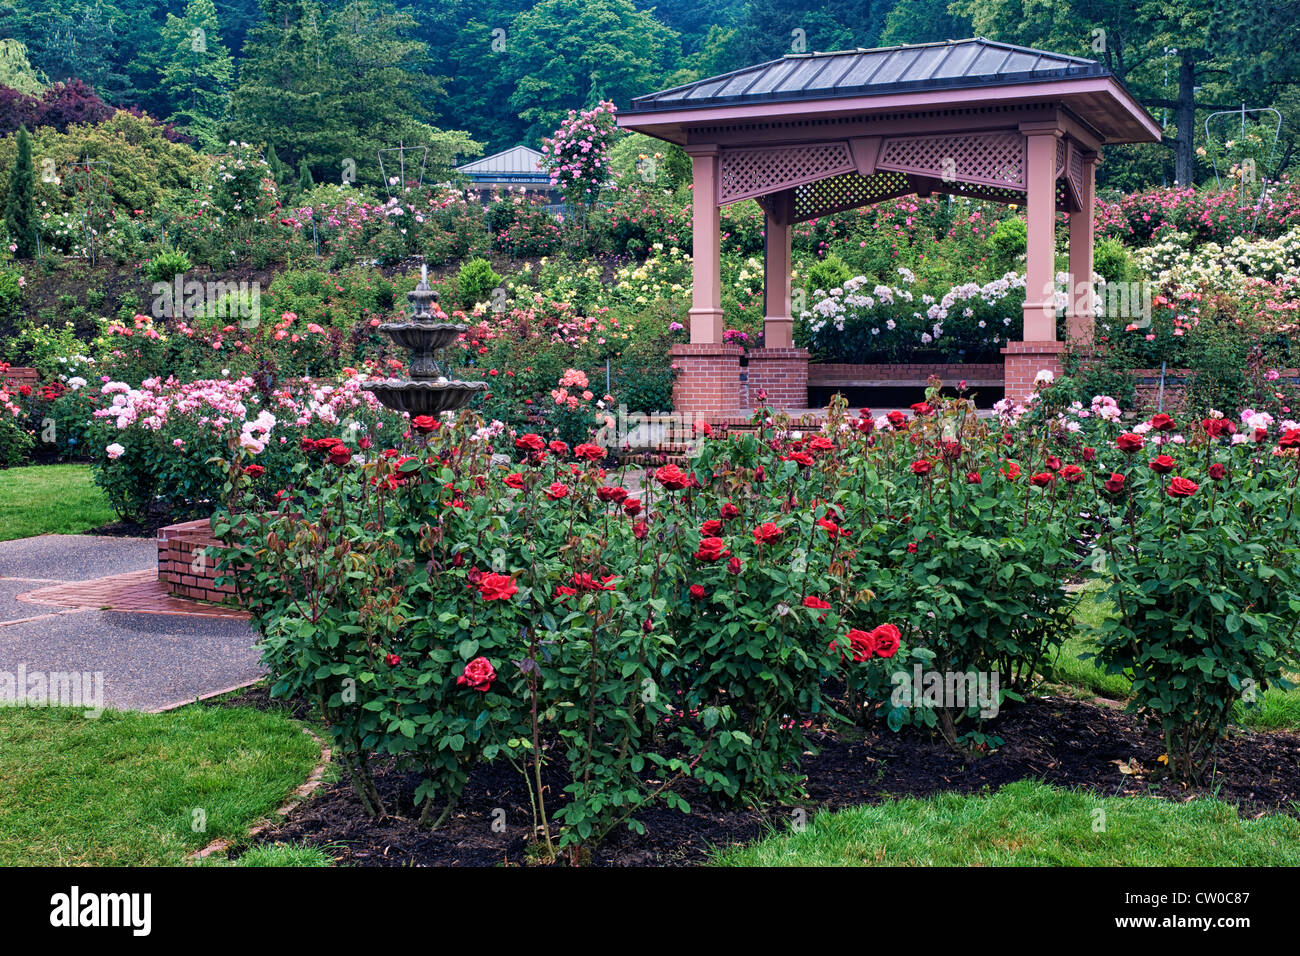 Portland's International Rose Test Garden in Washington Park displays 7,000 rose plants and 550 varieties of roses. - Stock Image